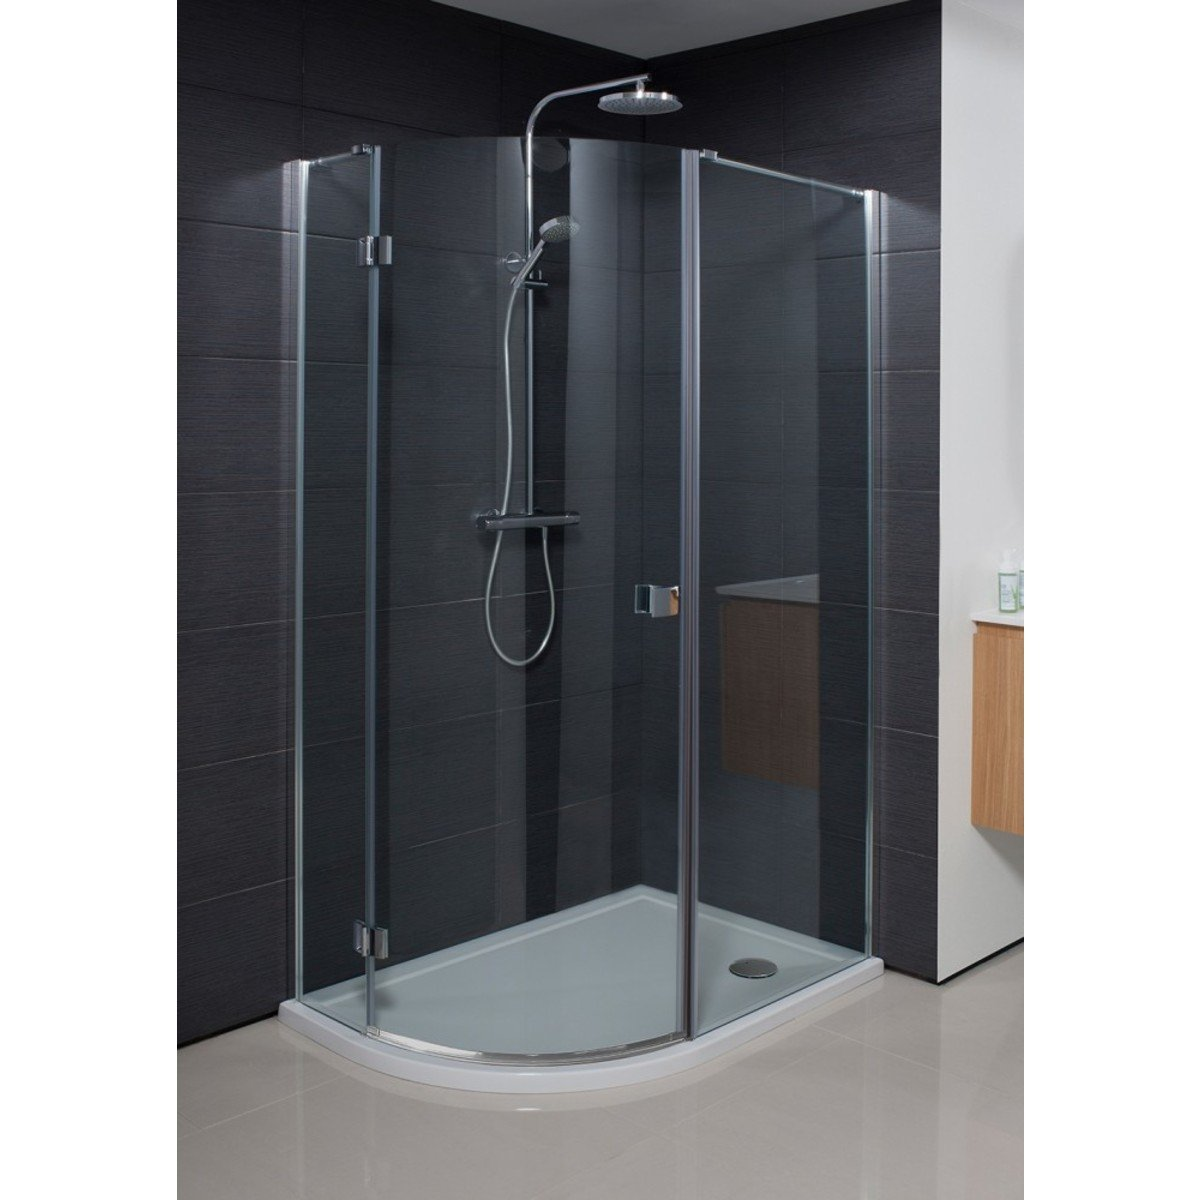 simpsons design cabine de douche 195x100x80cm quart de rond porte pivotante profil argent verre. Black Bedroom Furniture Sets. Home Design Ideas